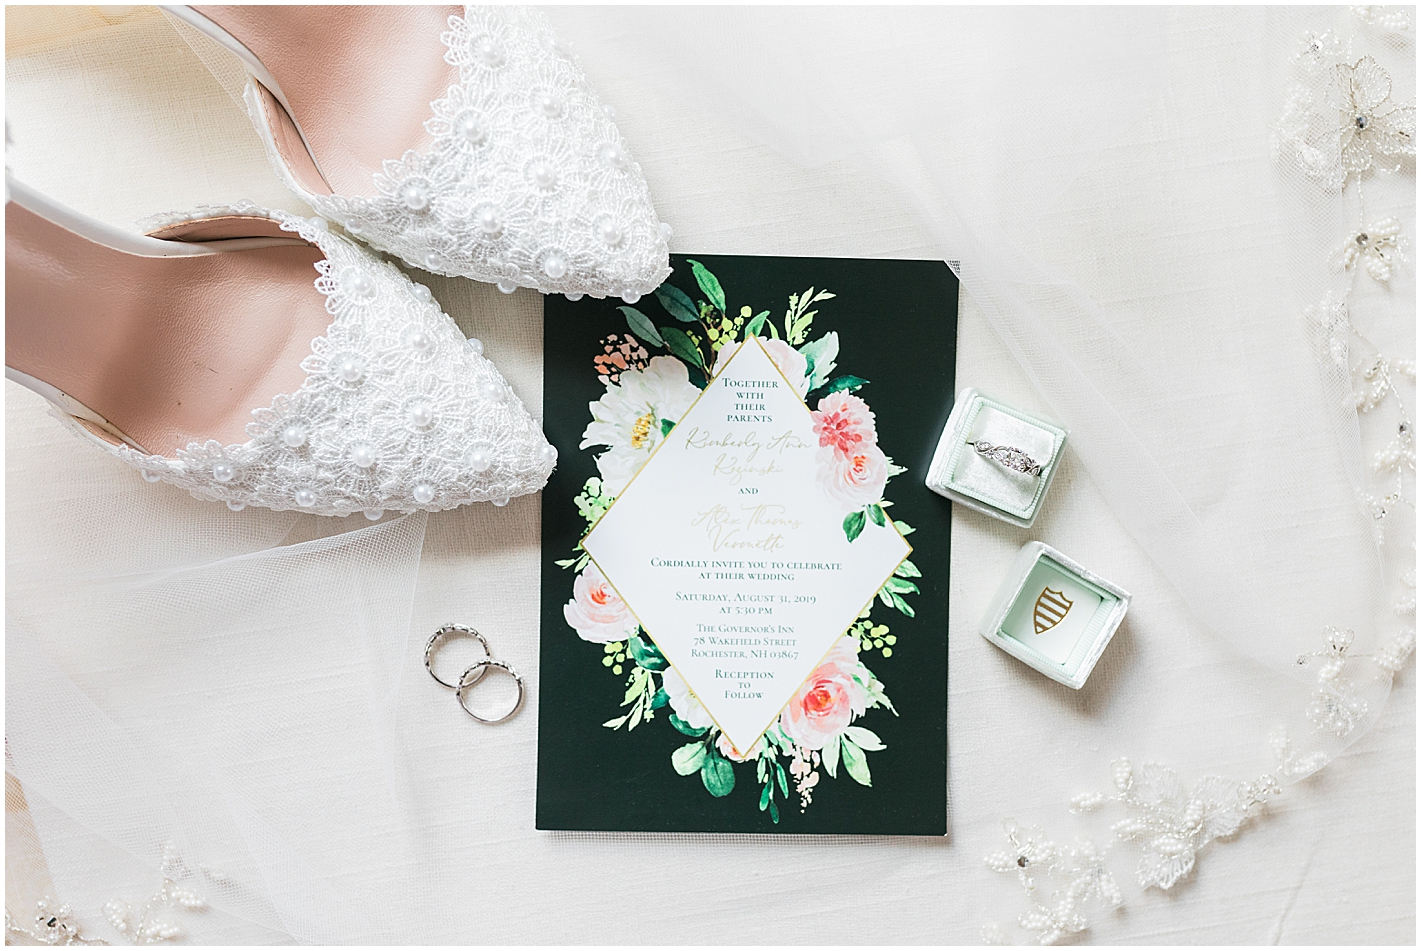 Green and Black Wedding Invite Photo by Alyssa Parker Photography